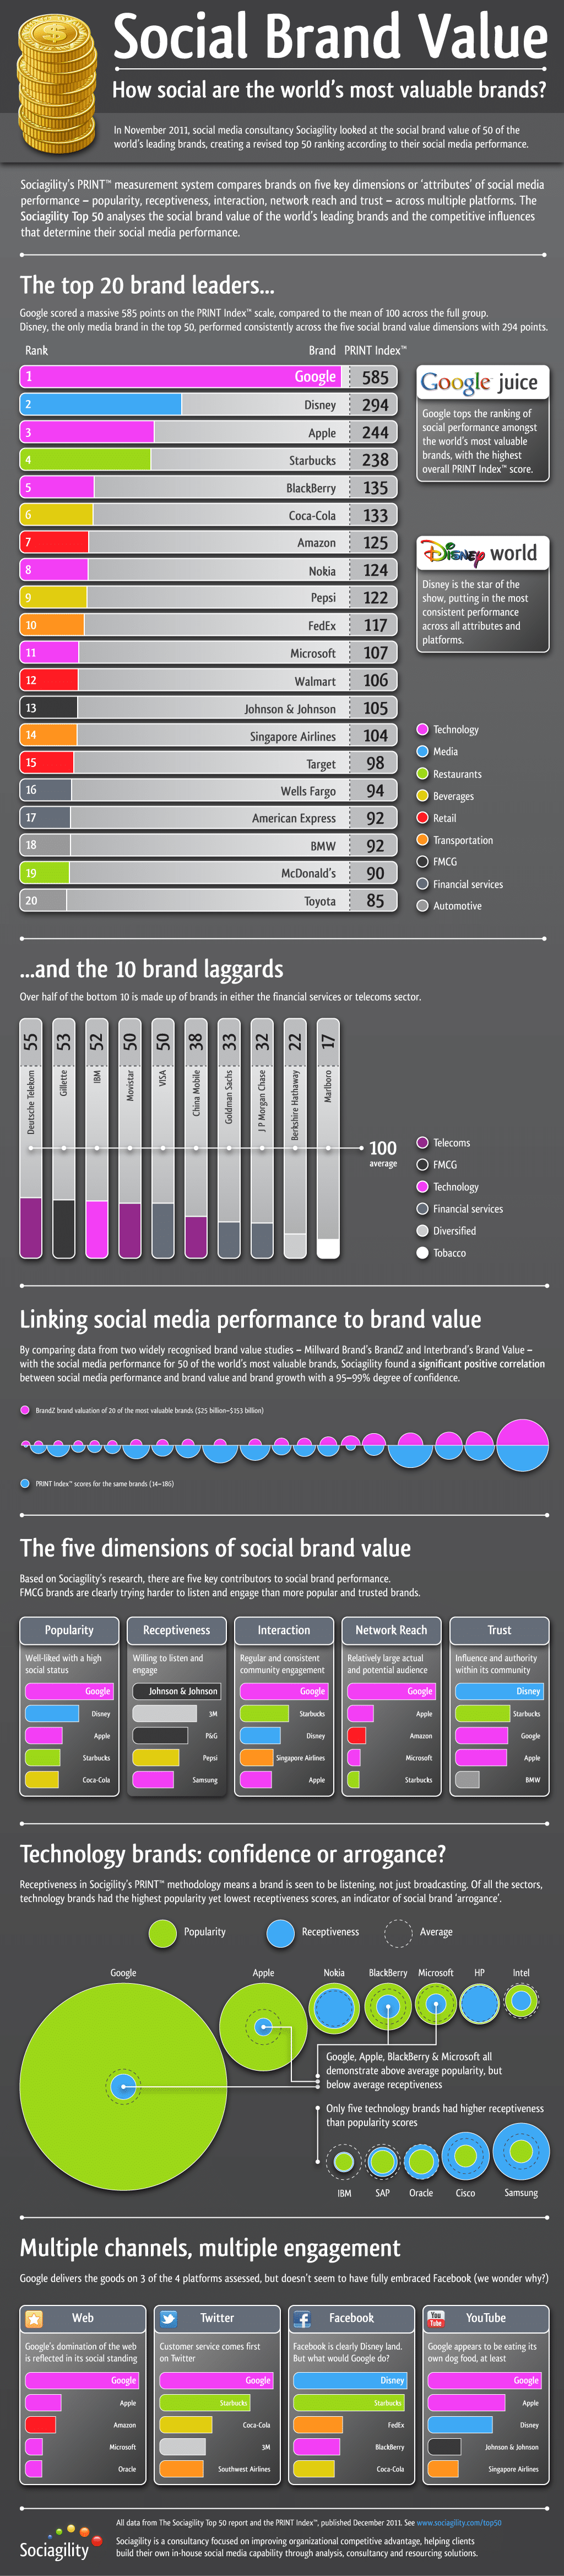 Social Brand Value: Leading Brands Compared [Infographic]